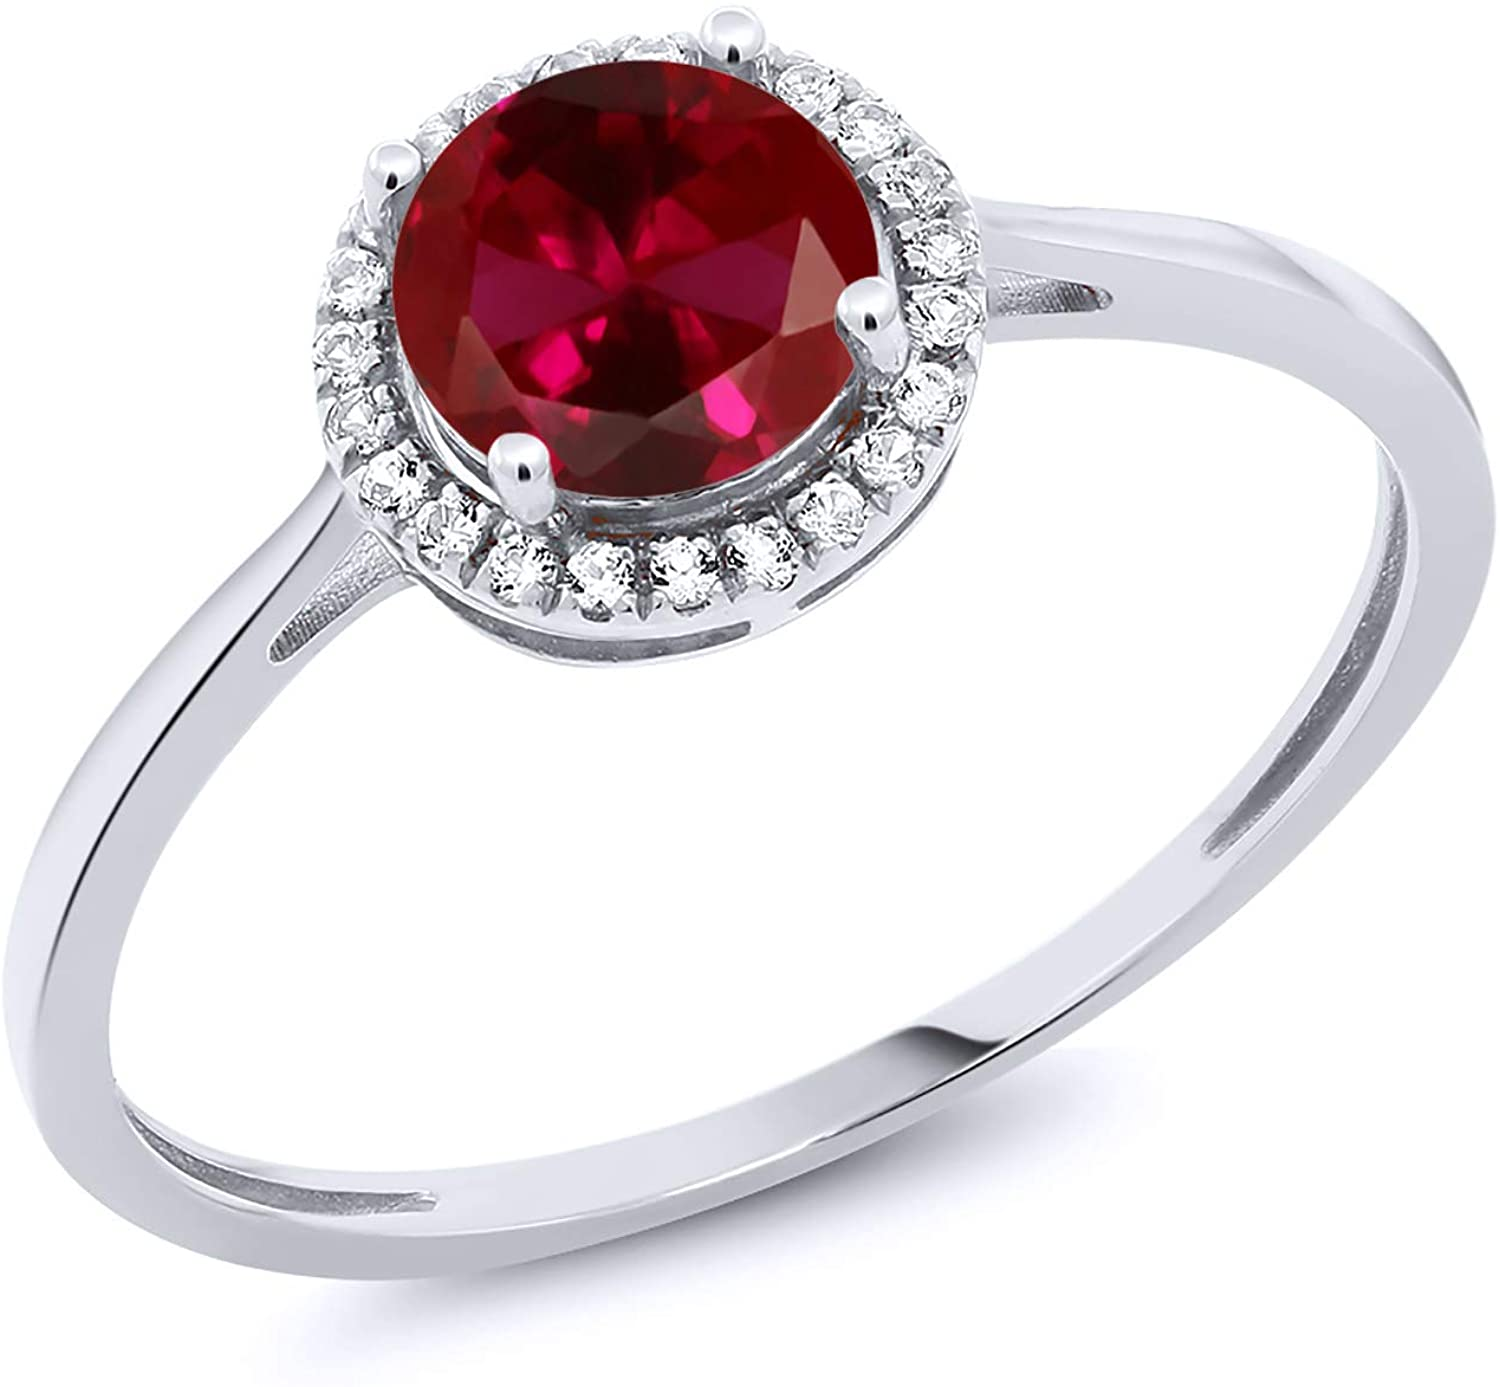 Gem Stone King 10K White Gold Red Created Ruby and Diamond Engagement Ring 1.22 cttw (Available 5,6,7,8,9)